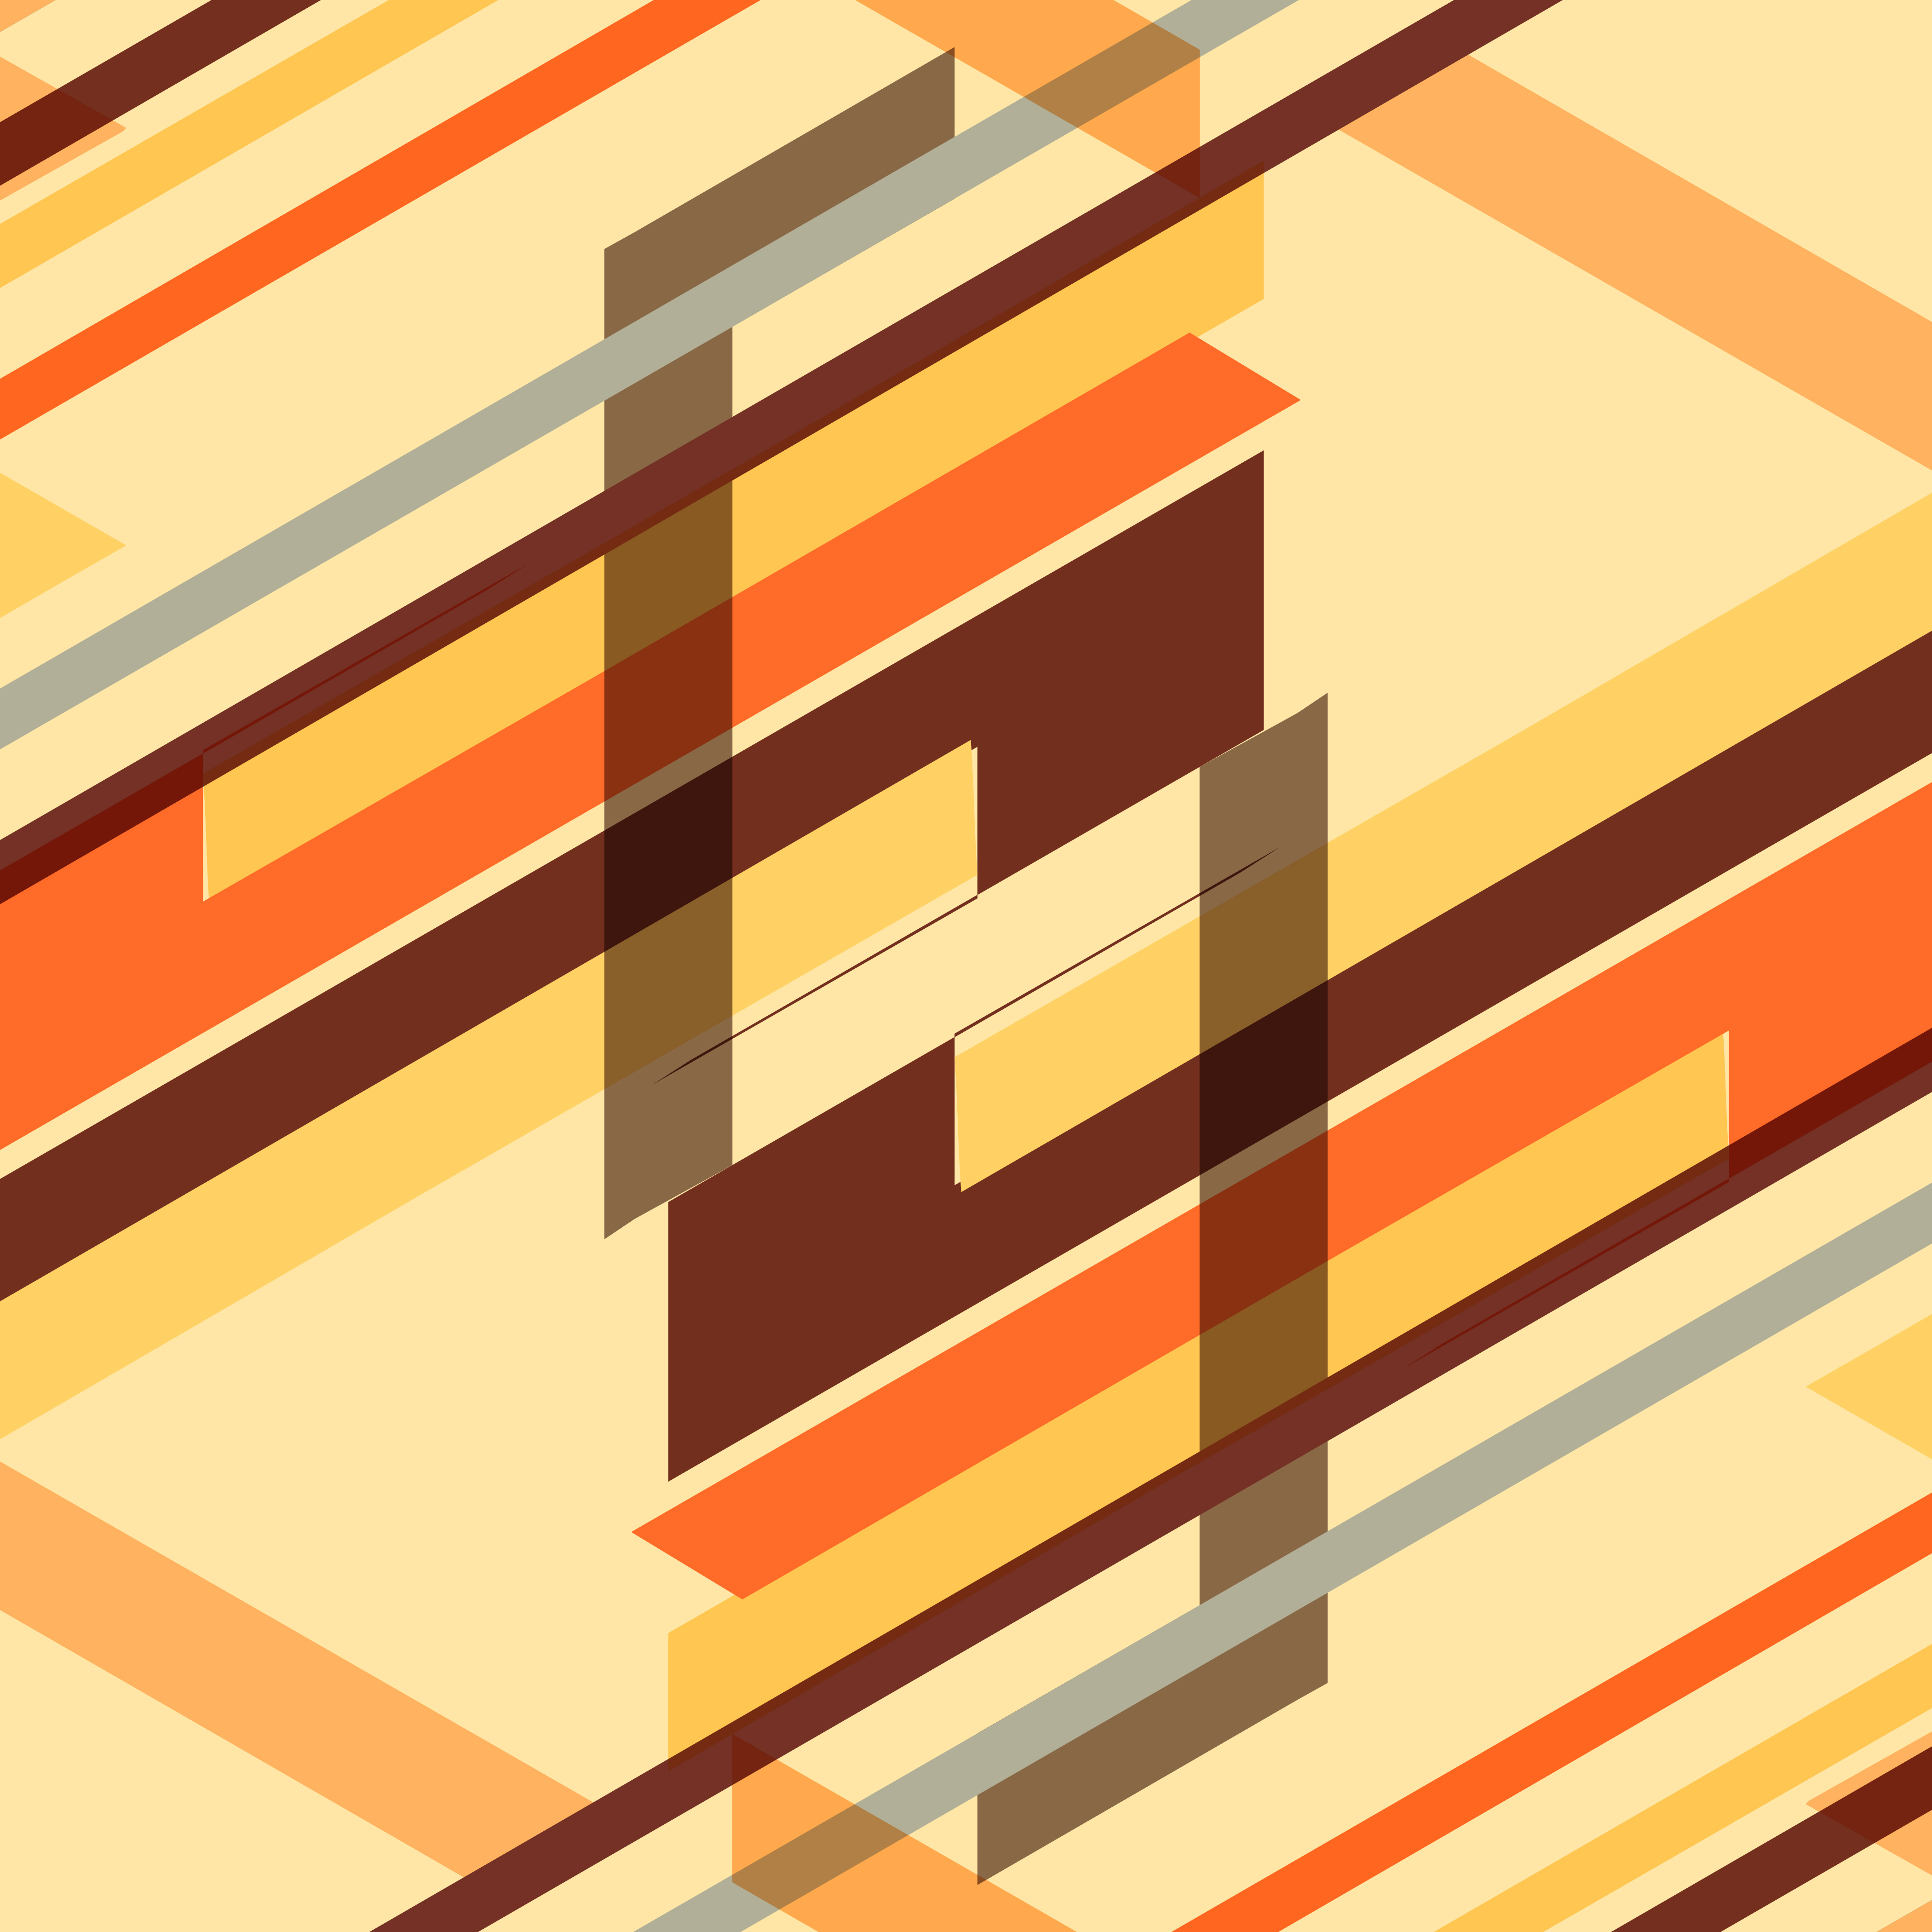 Abstract Colorful Retro Geometric Background